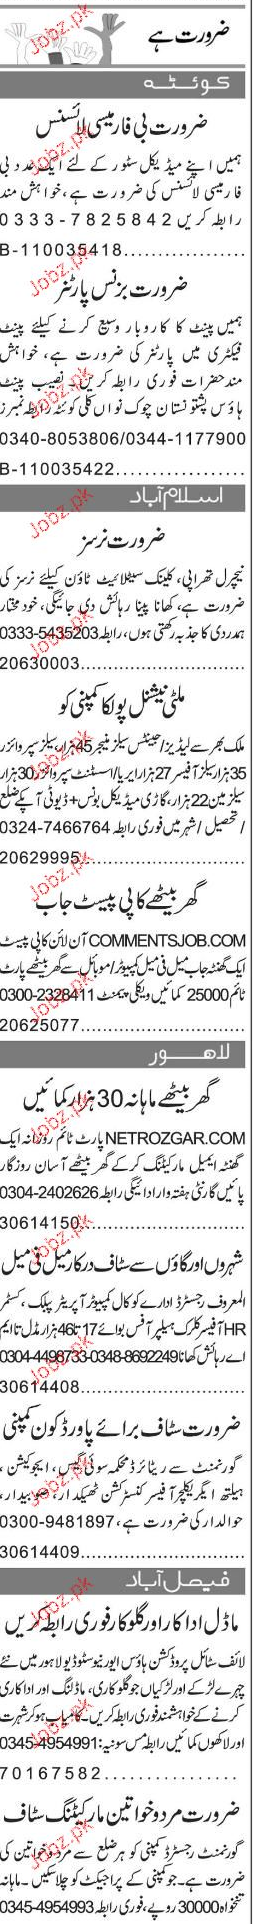 Sales Manager, Data Entry Operators Job Opportunity